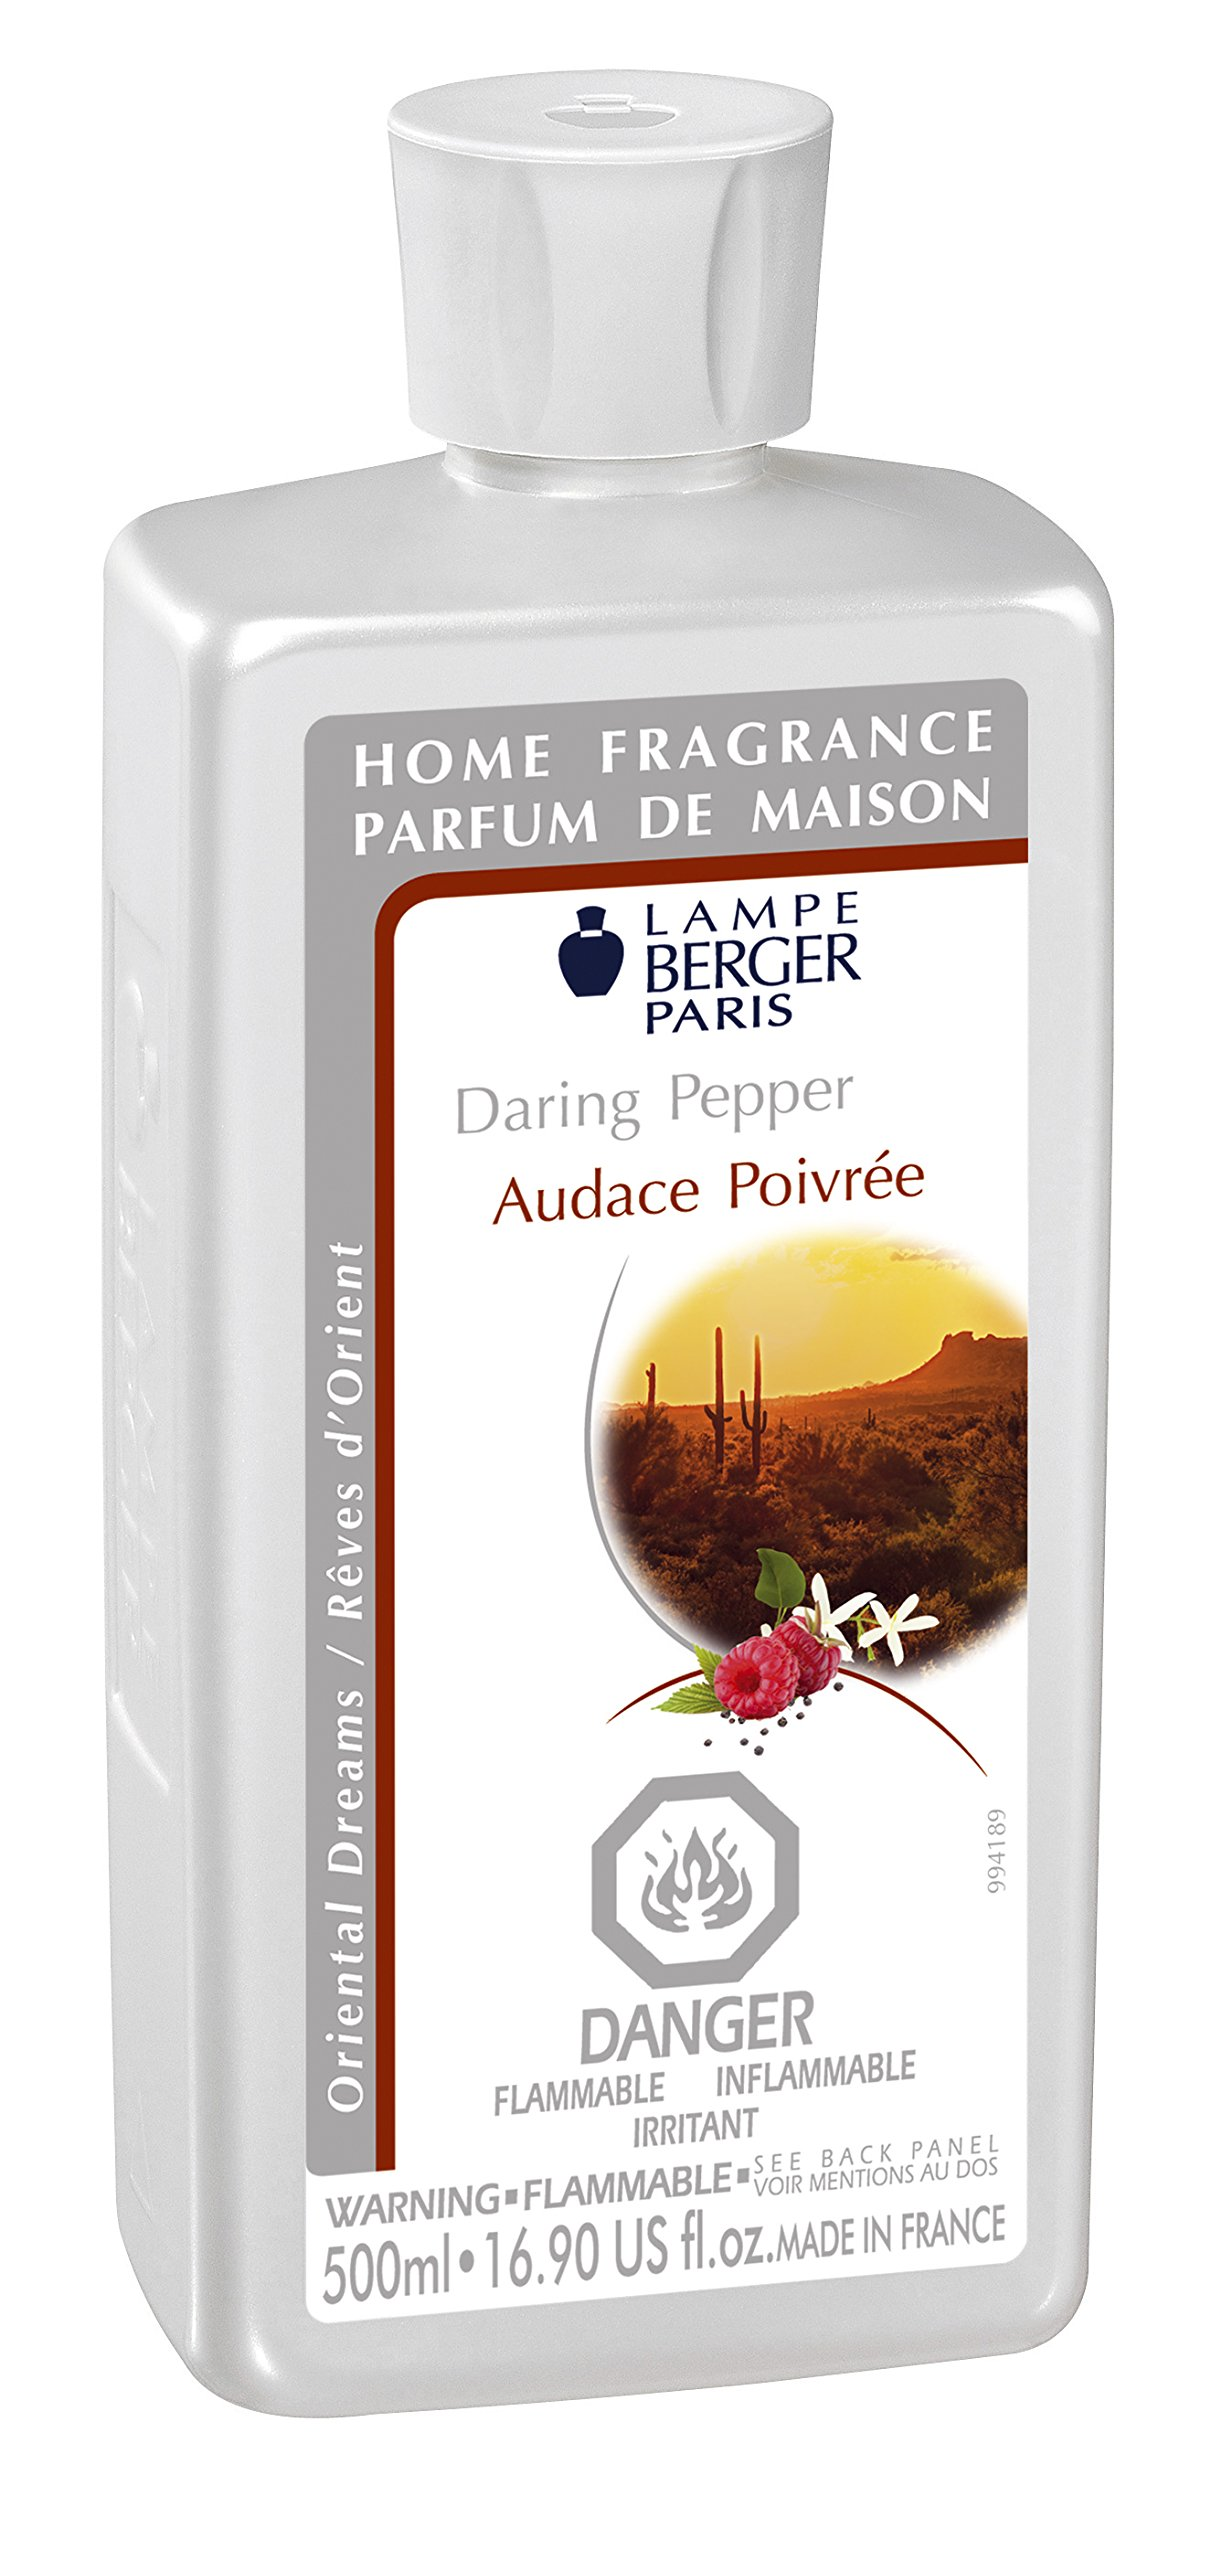 Lampe Berger 415310 500ml-Daring Pepper Fragrance - Daring Pepper , 500ml / 16.9 Fl.Oz